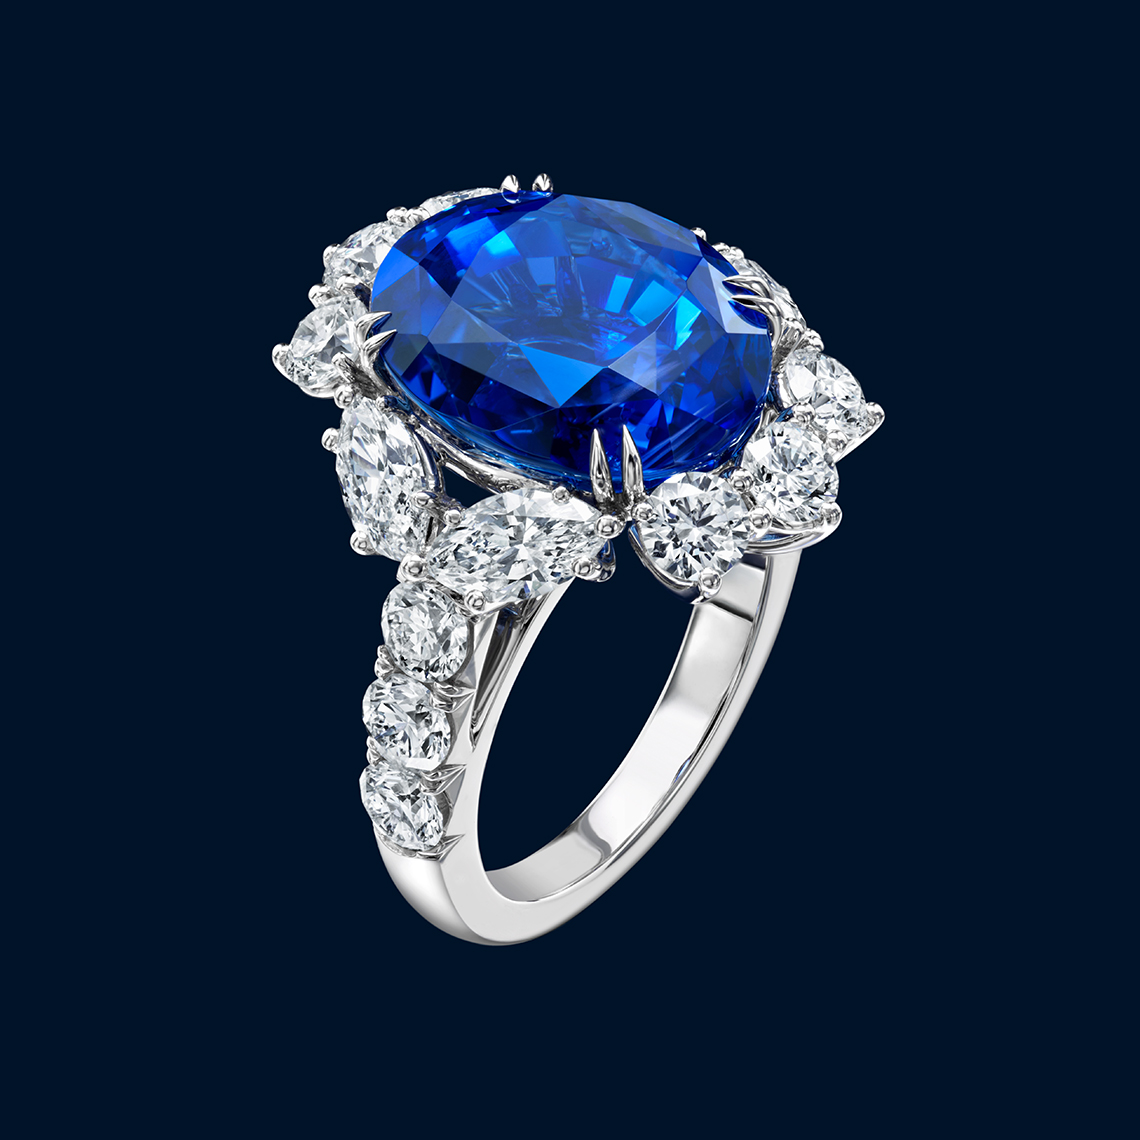 HIGH JEWELRY DIAMOND AND SAPPHIRE RING MADE BY HARRY WINSTON AND SHOT BY DAVID FILIBERTI